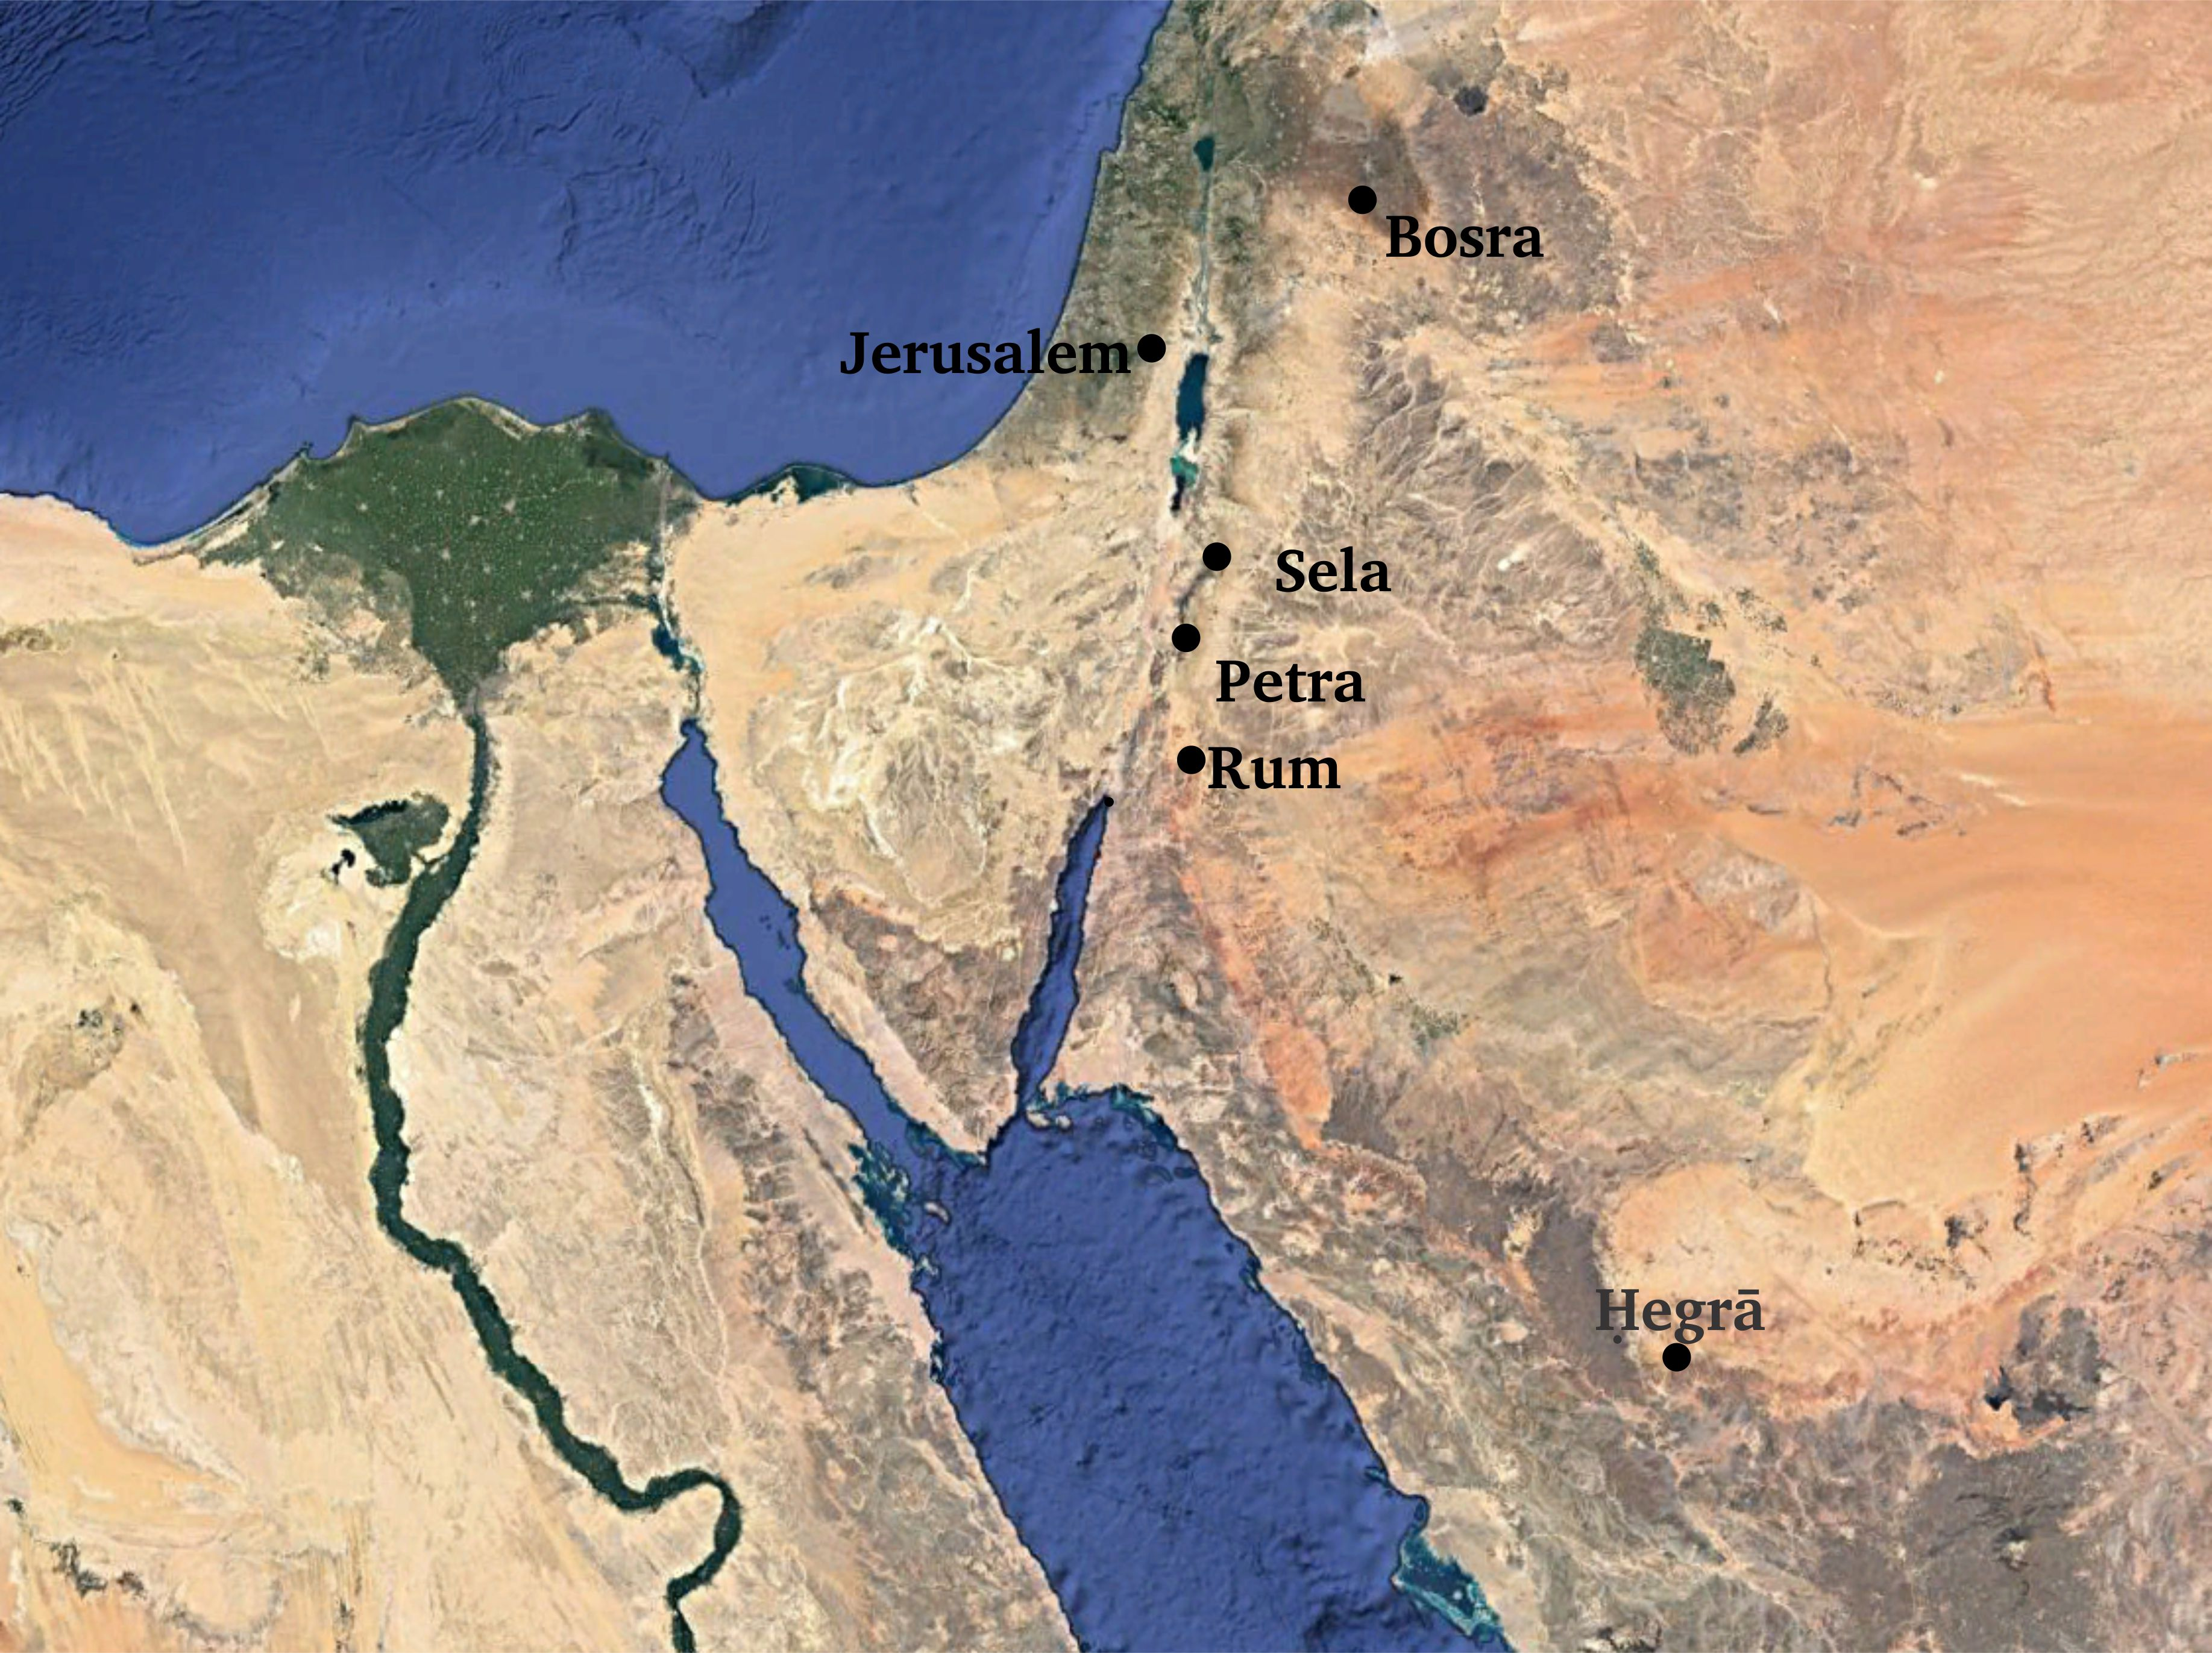 The locations of Sela, Petra, Hegra, and Wadi Rum.